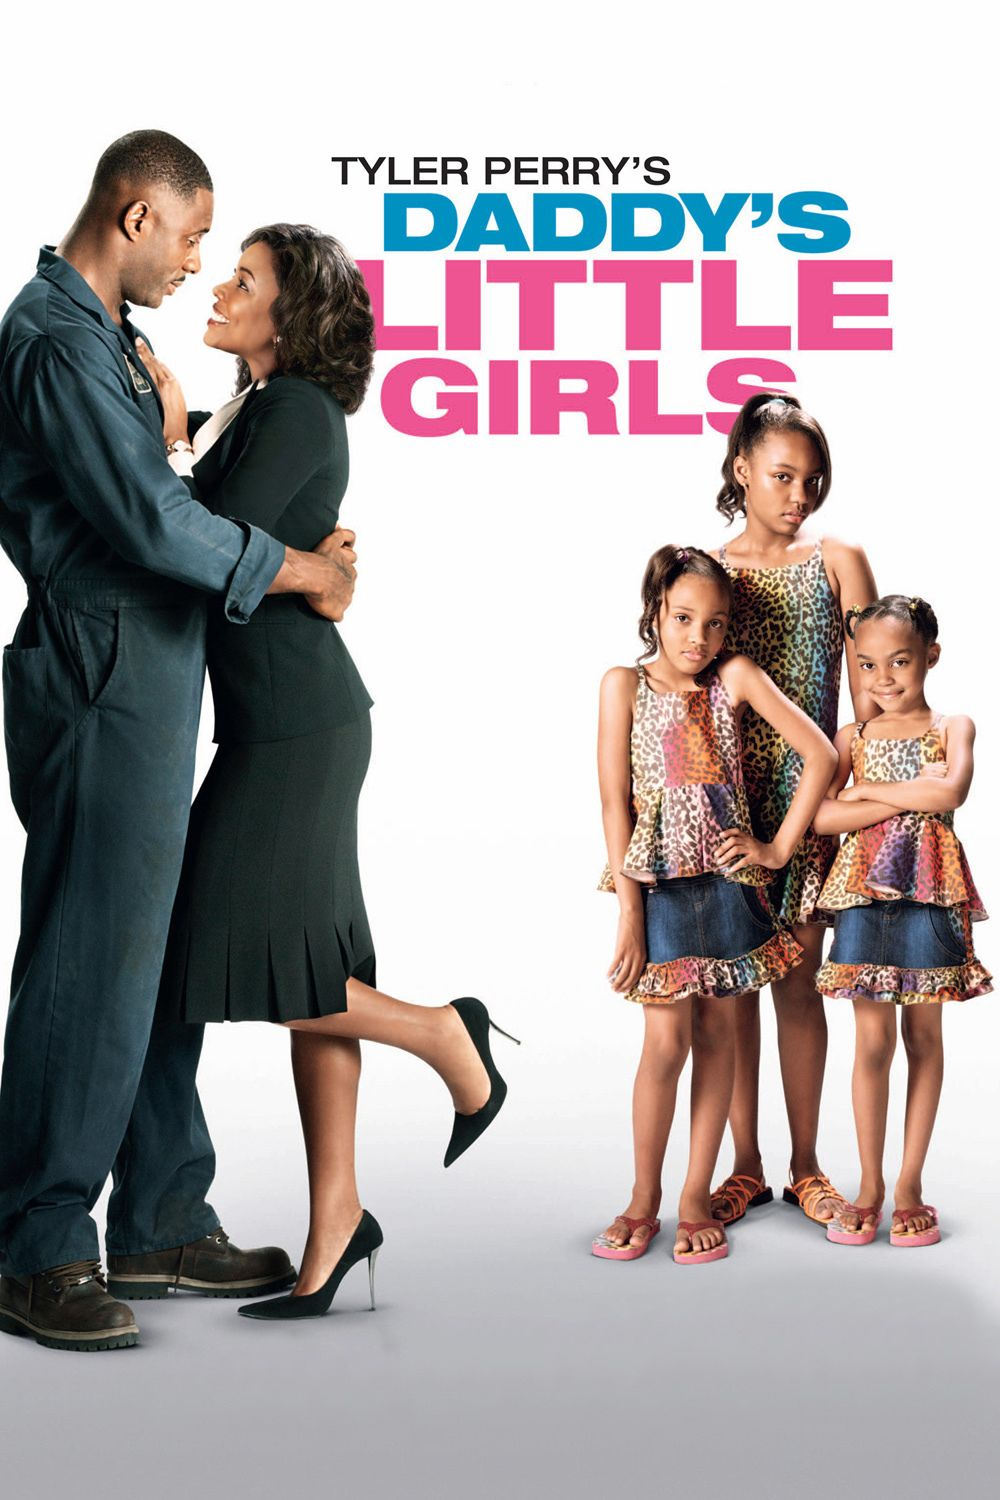 click image to watch daddy's little girls (2007) | wow in 2018